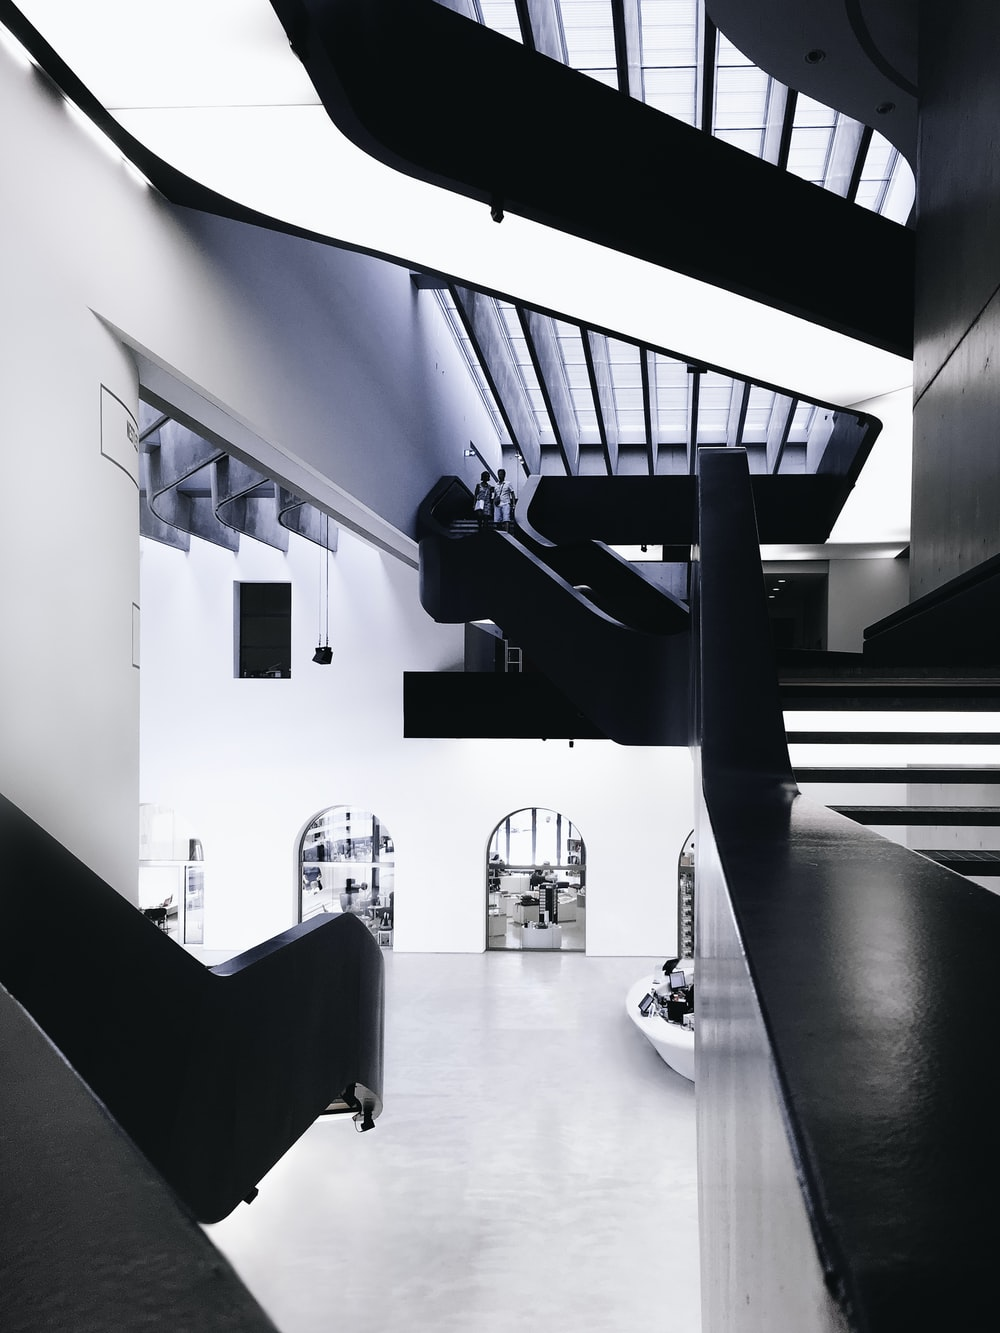 architectural photography of 2-storey building